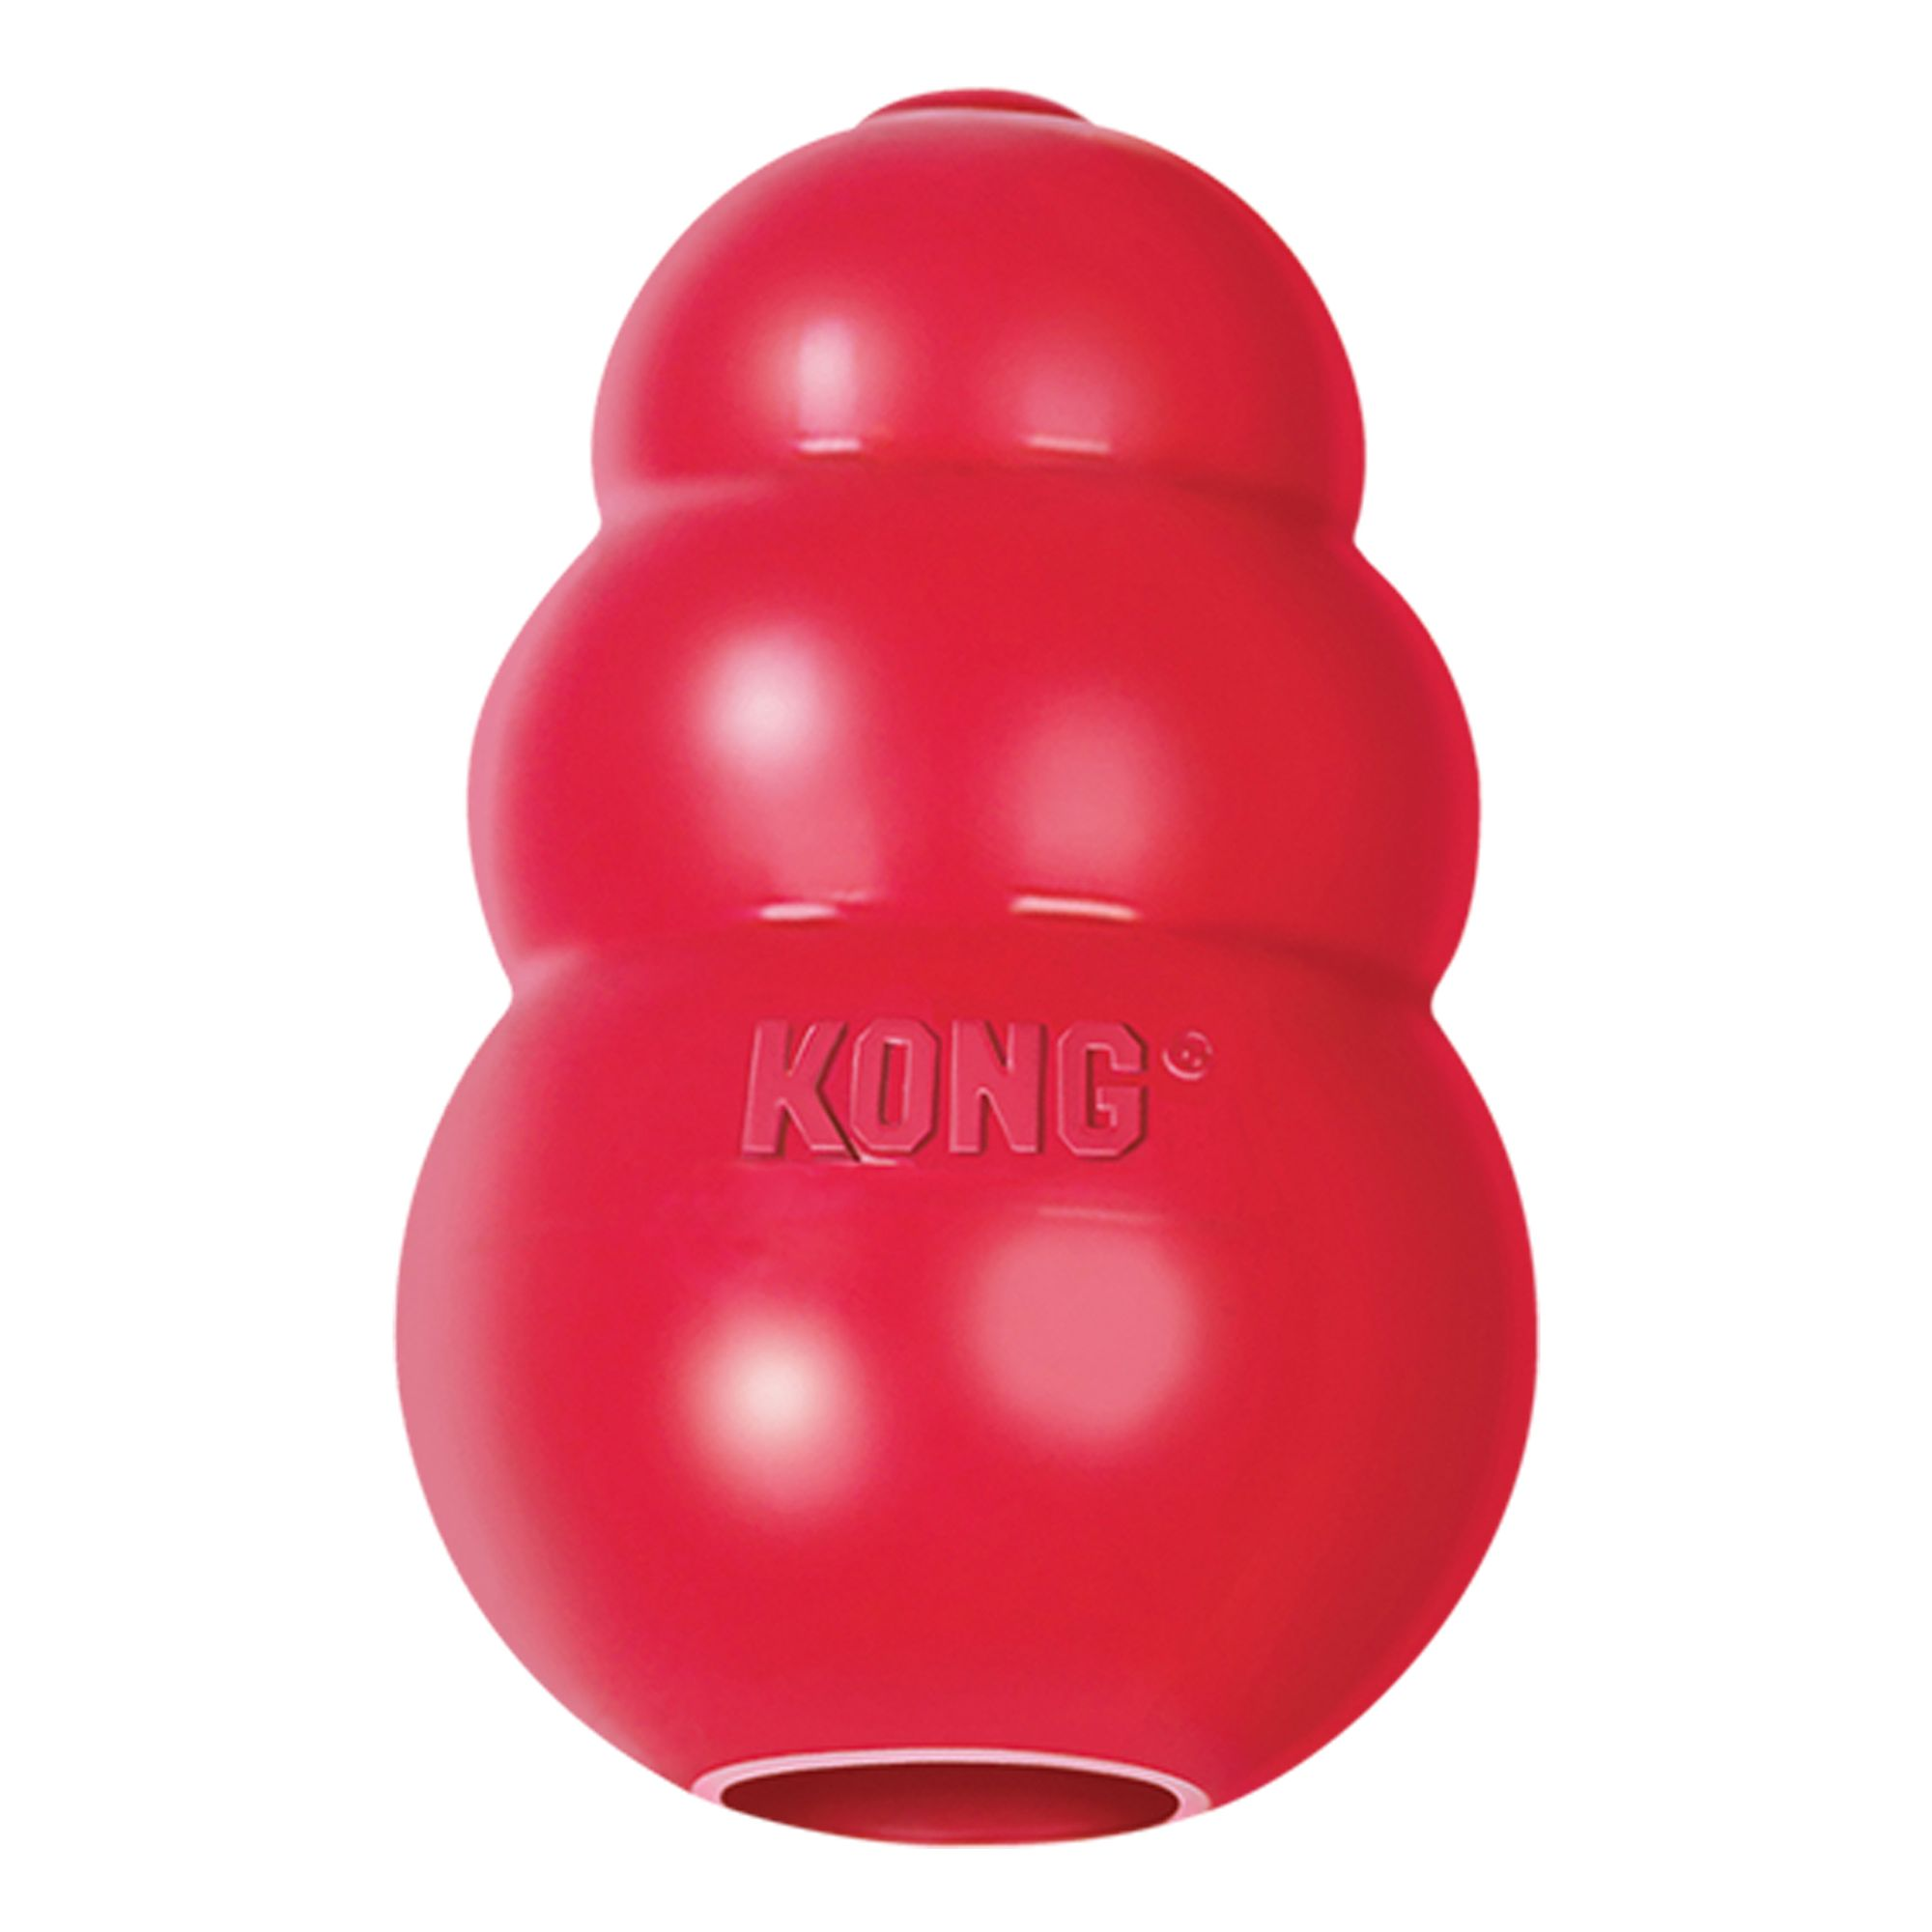 Kong® Classic Dog Toy - Treat Dispensing size: King, Red 1811629